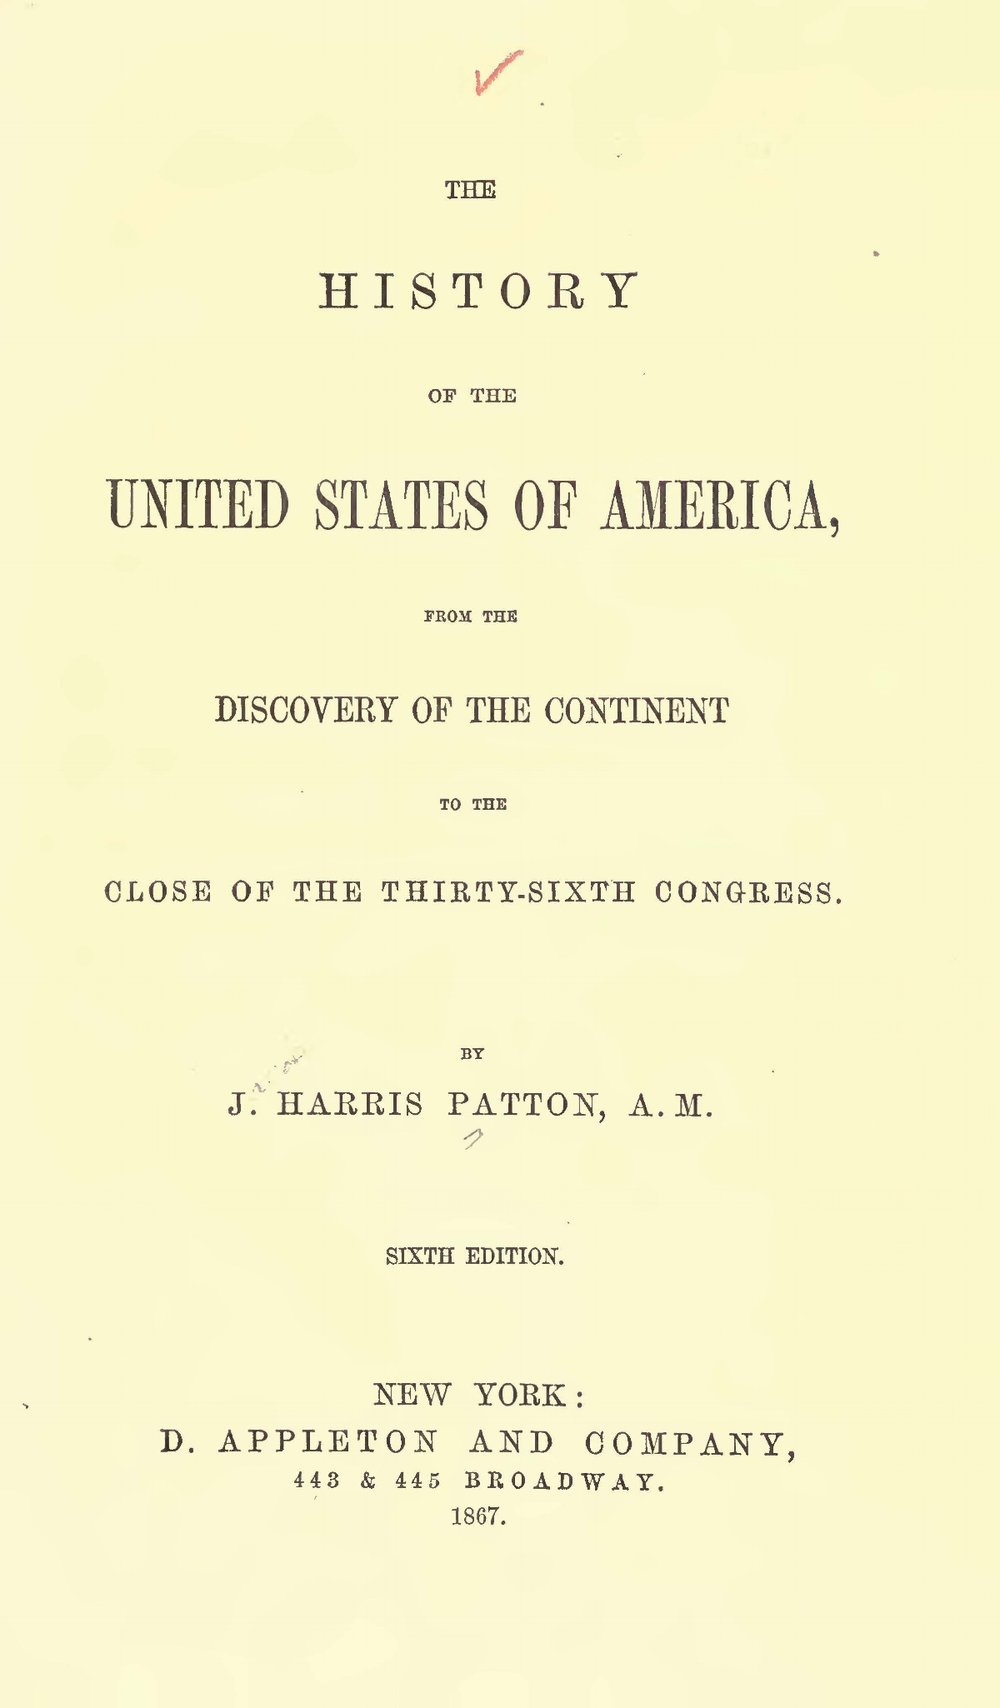 Patton, Jacob Harris, The History of the United States of America Title Page.jpg